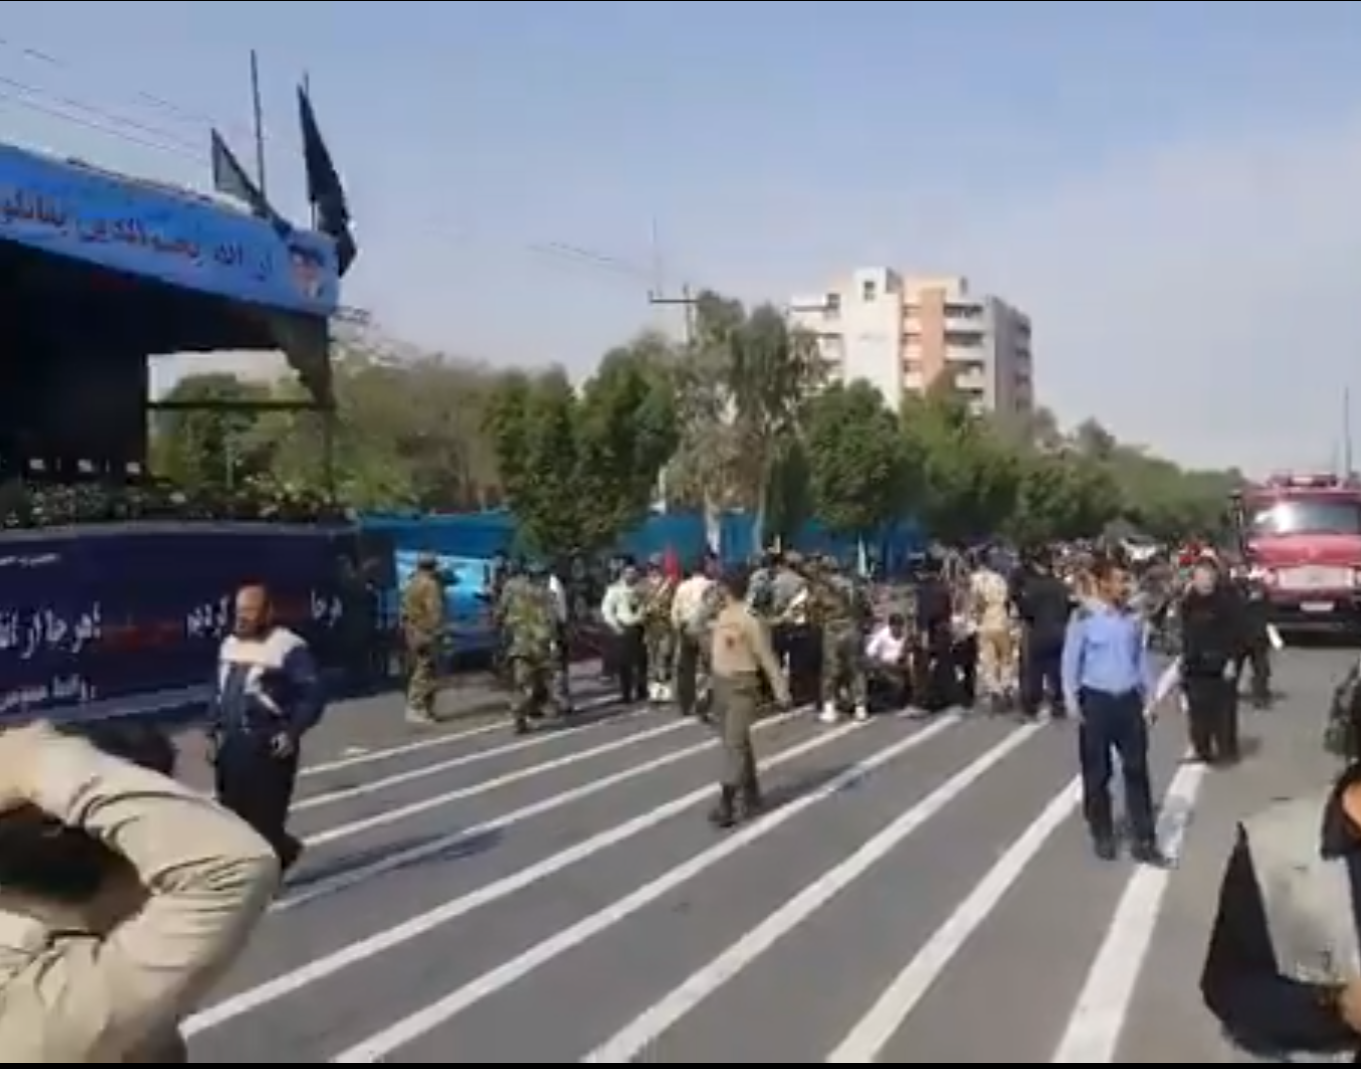 25 killed in attack on Iranian military parade